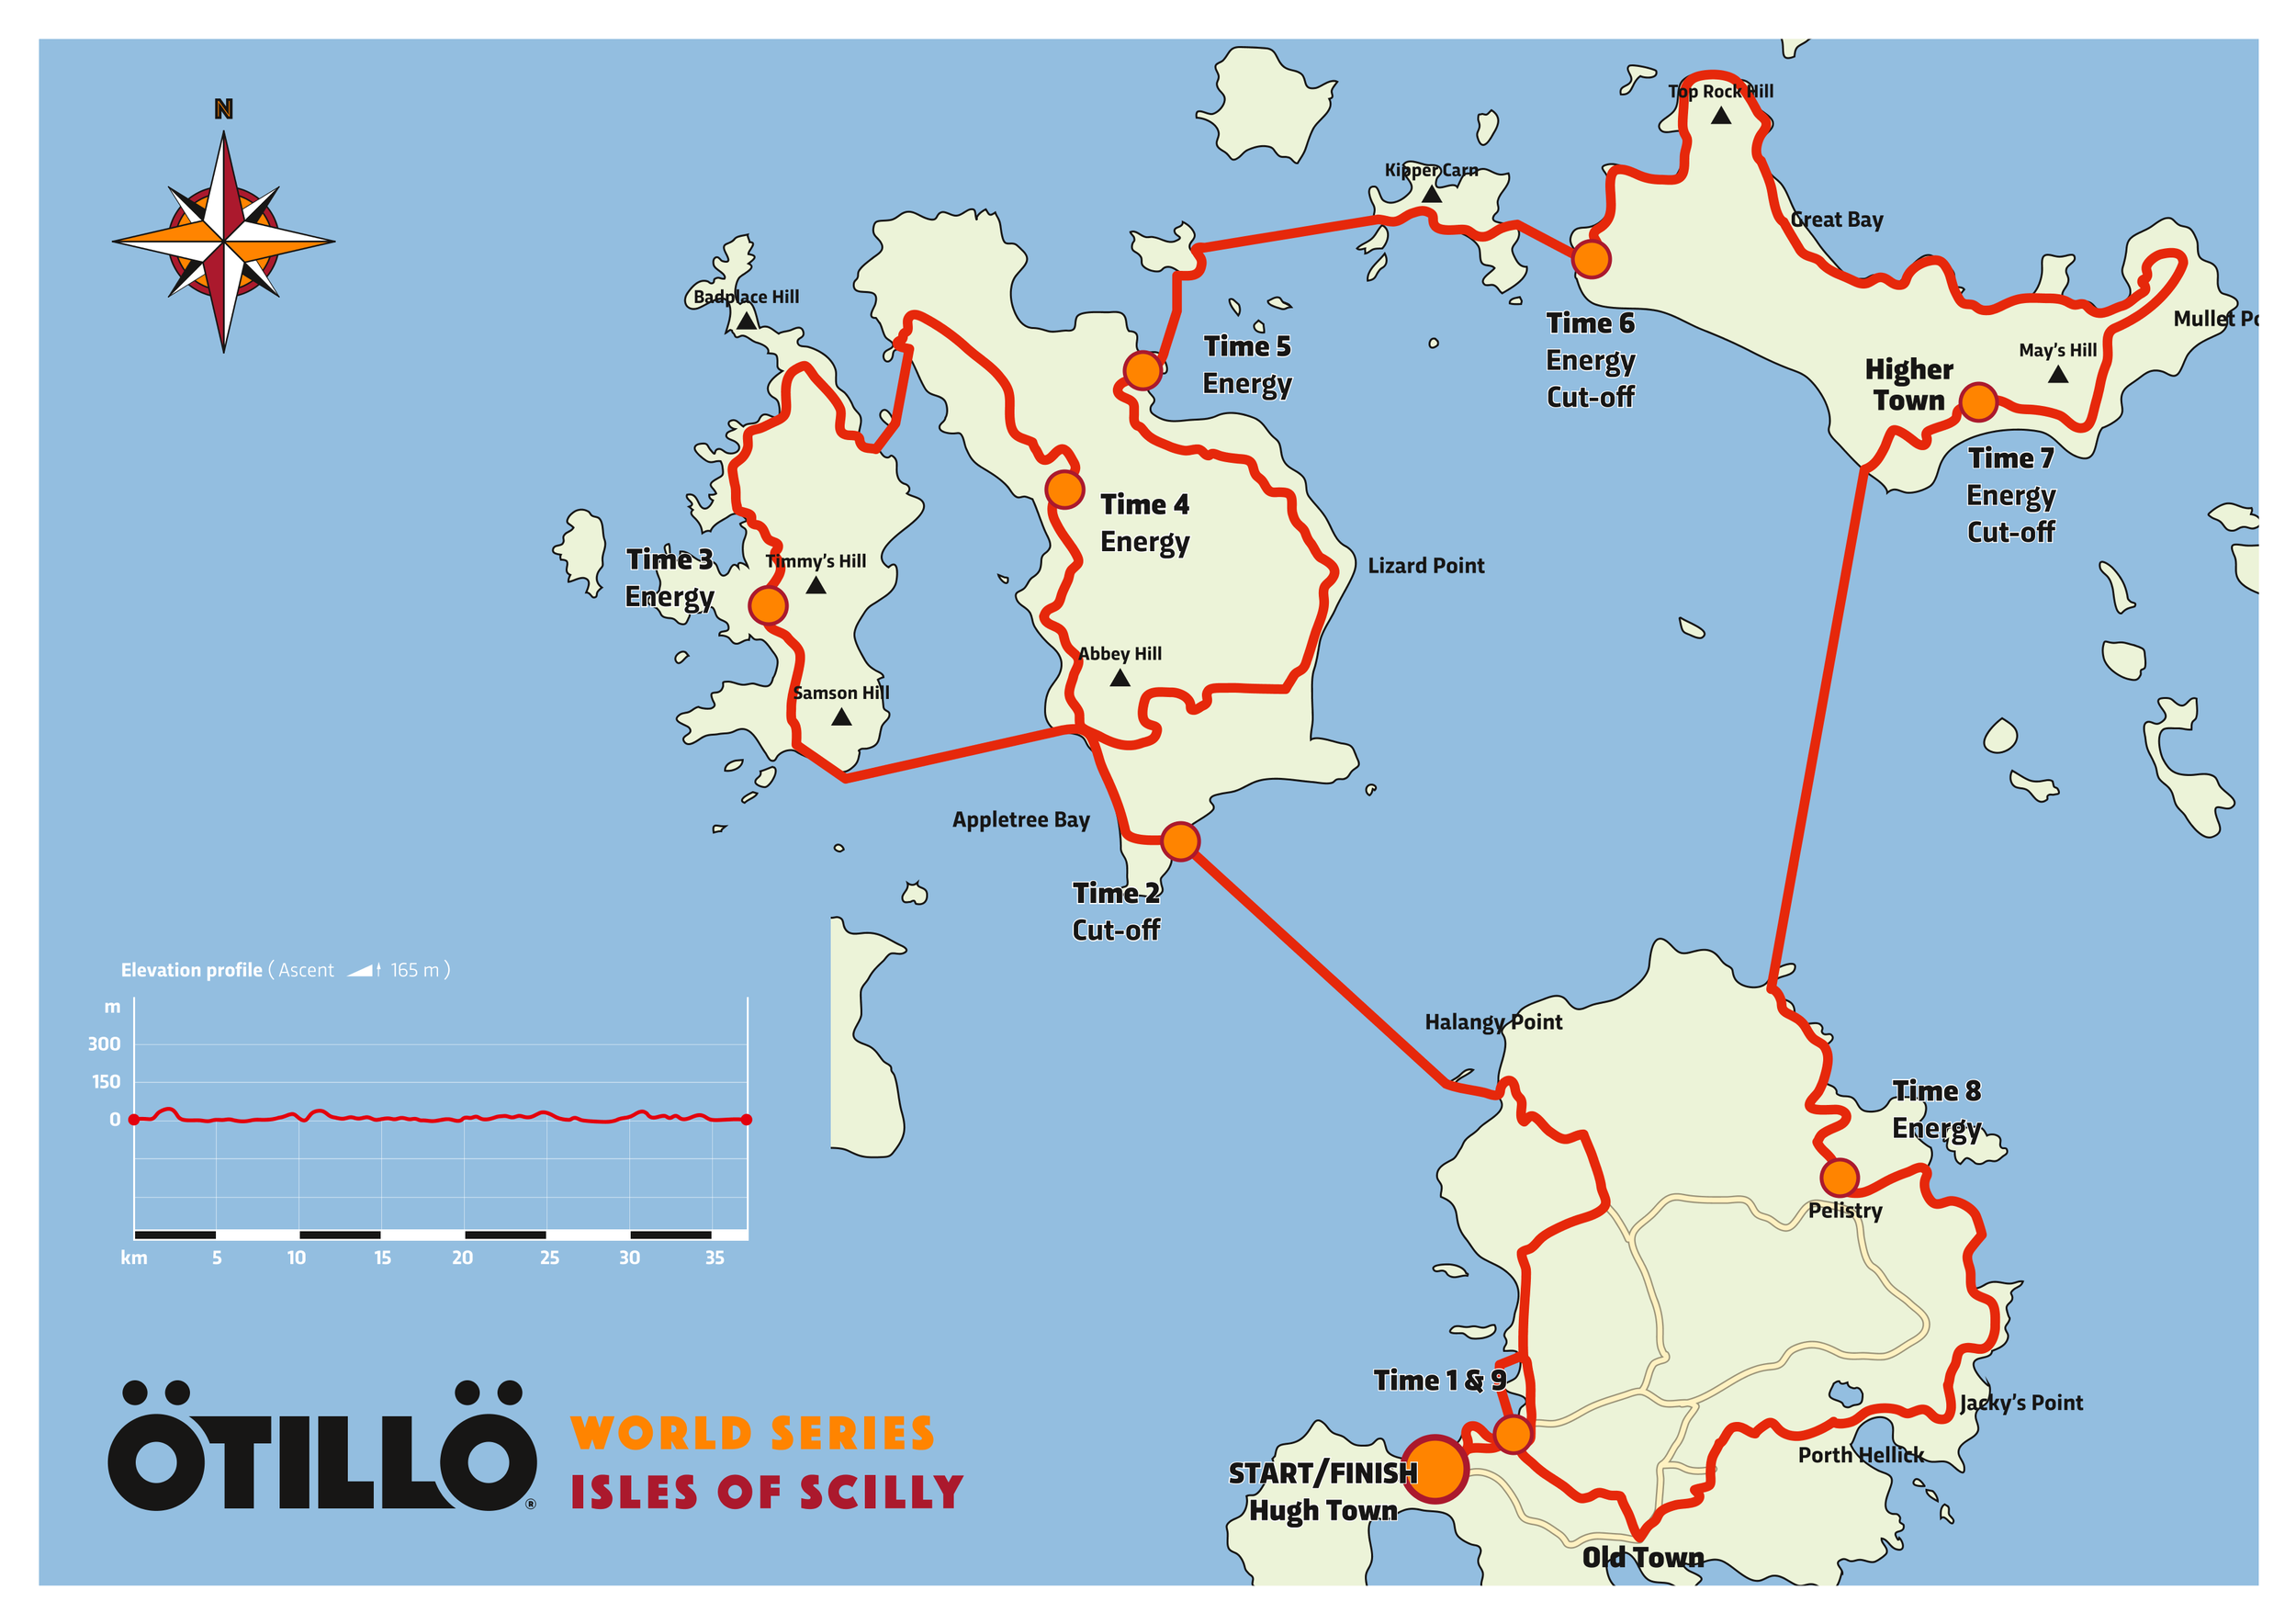 Scilly_WS_Map_2019.png